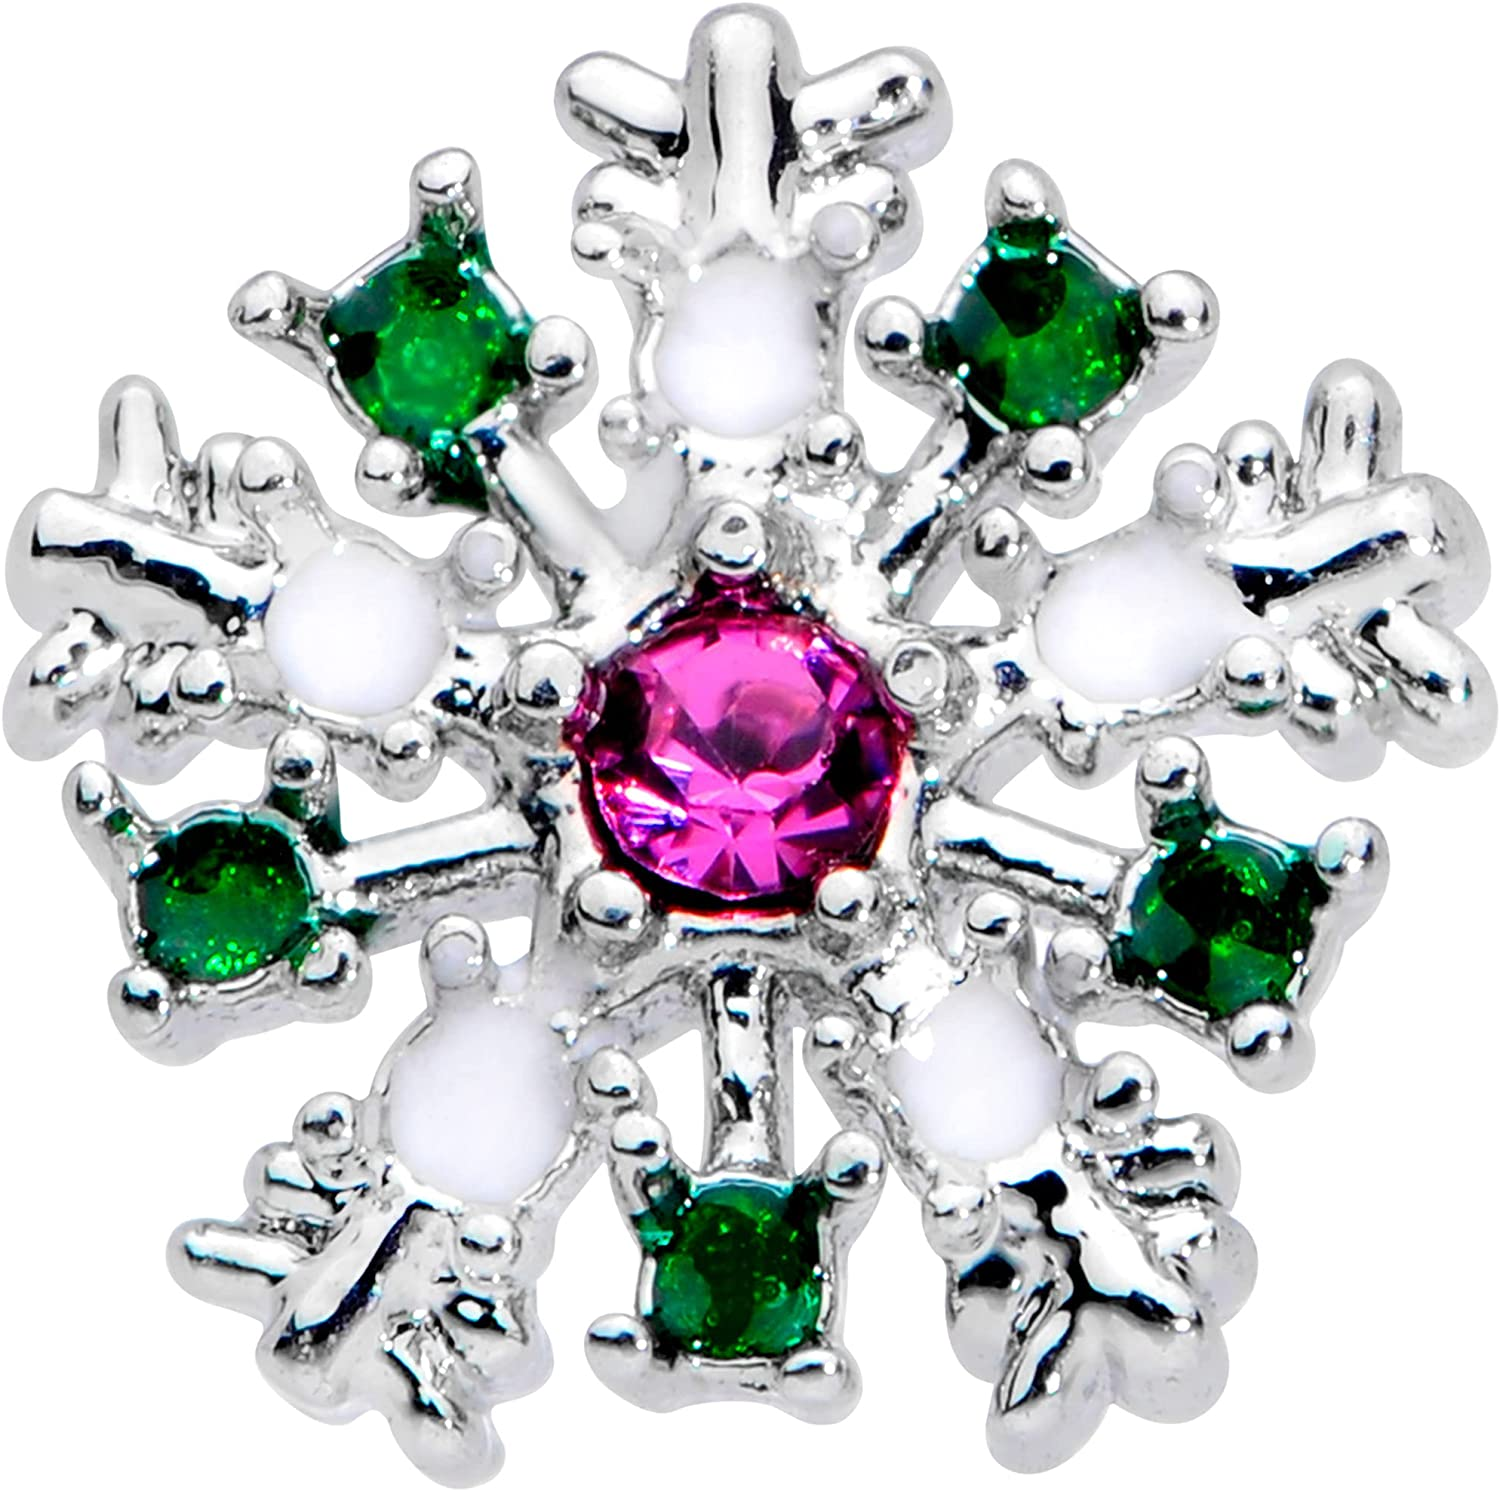 Body Candy Womens 20G Steel Nose Ring Pink Accent Snowflake Nose Stud Nose Bone Body Piercing Jewelry 1/4